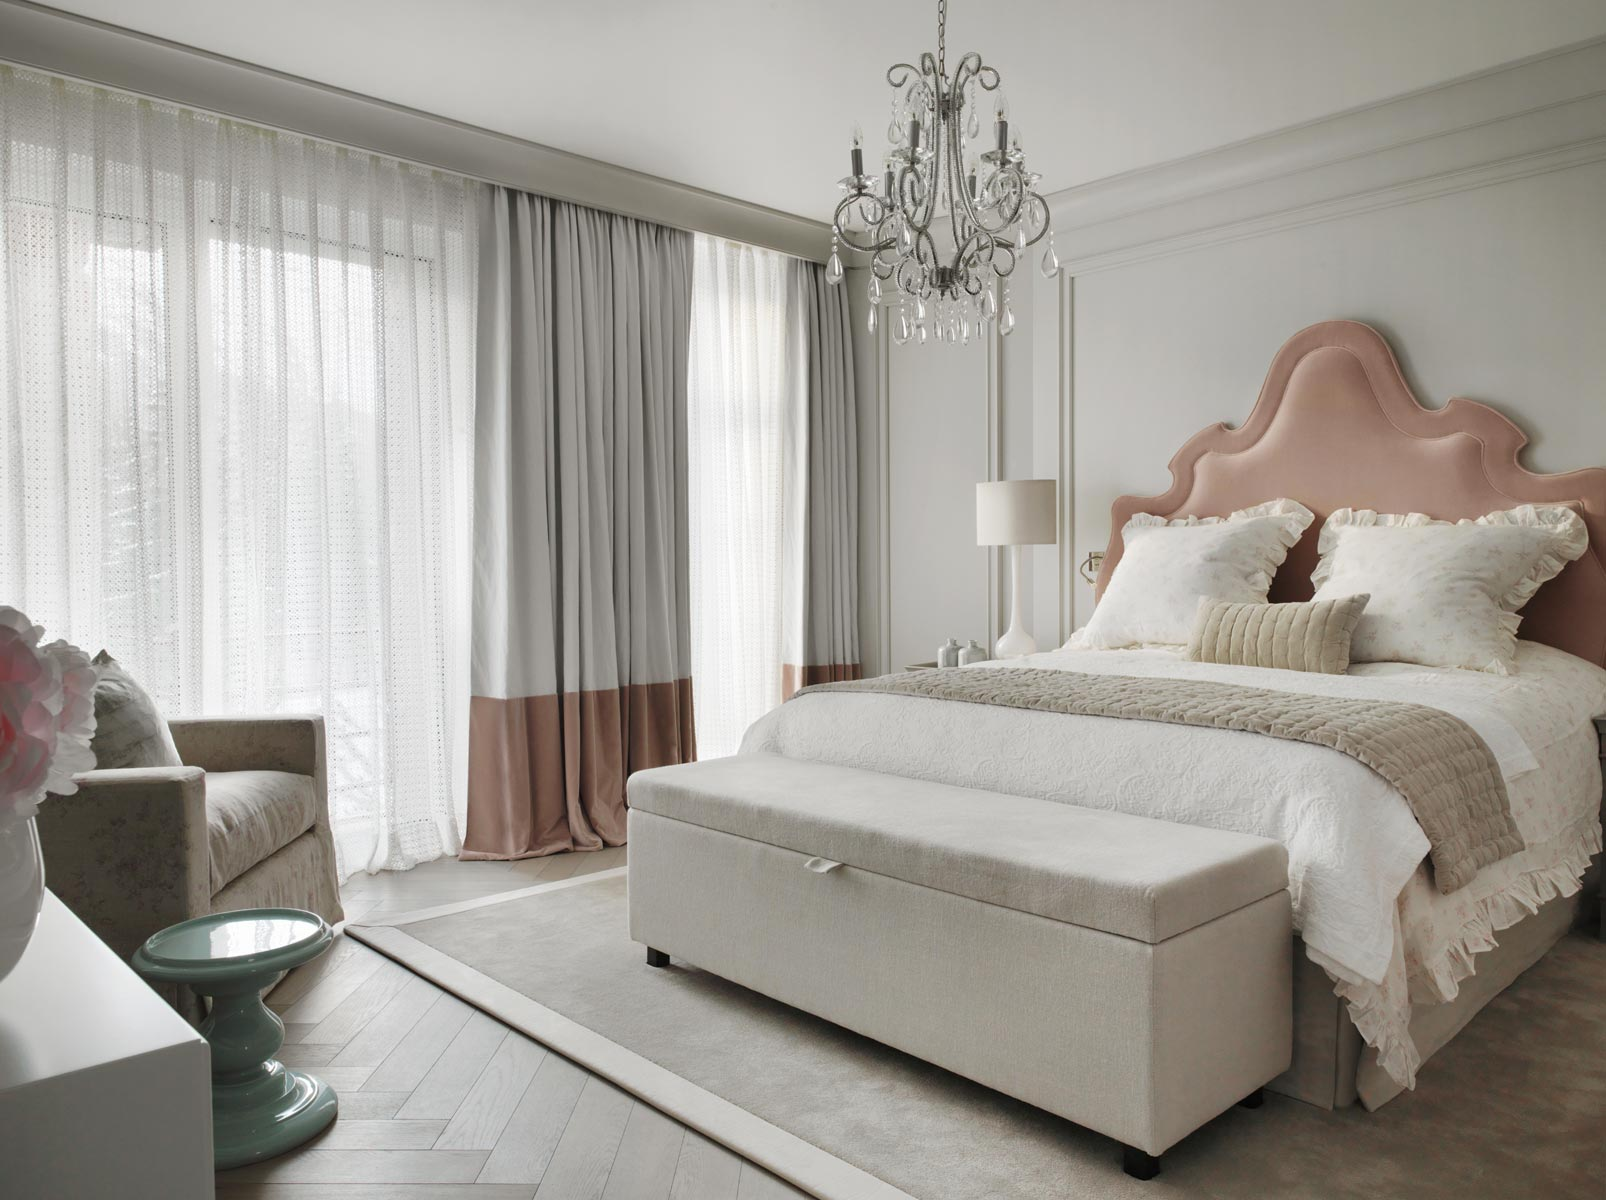 Amazing Modern Design Bedroom By Kelly Hoppen Kelly Hoppen Top 10 Kelly Hoppen  Design Ideas Chalet Switzerland3